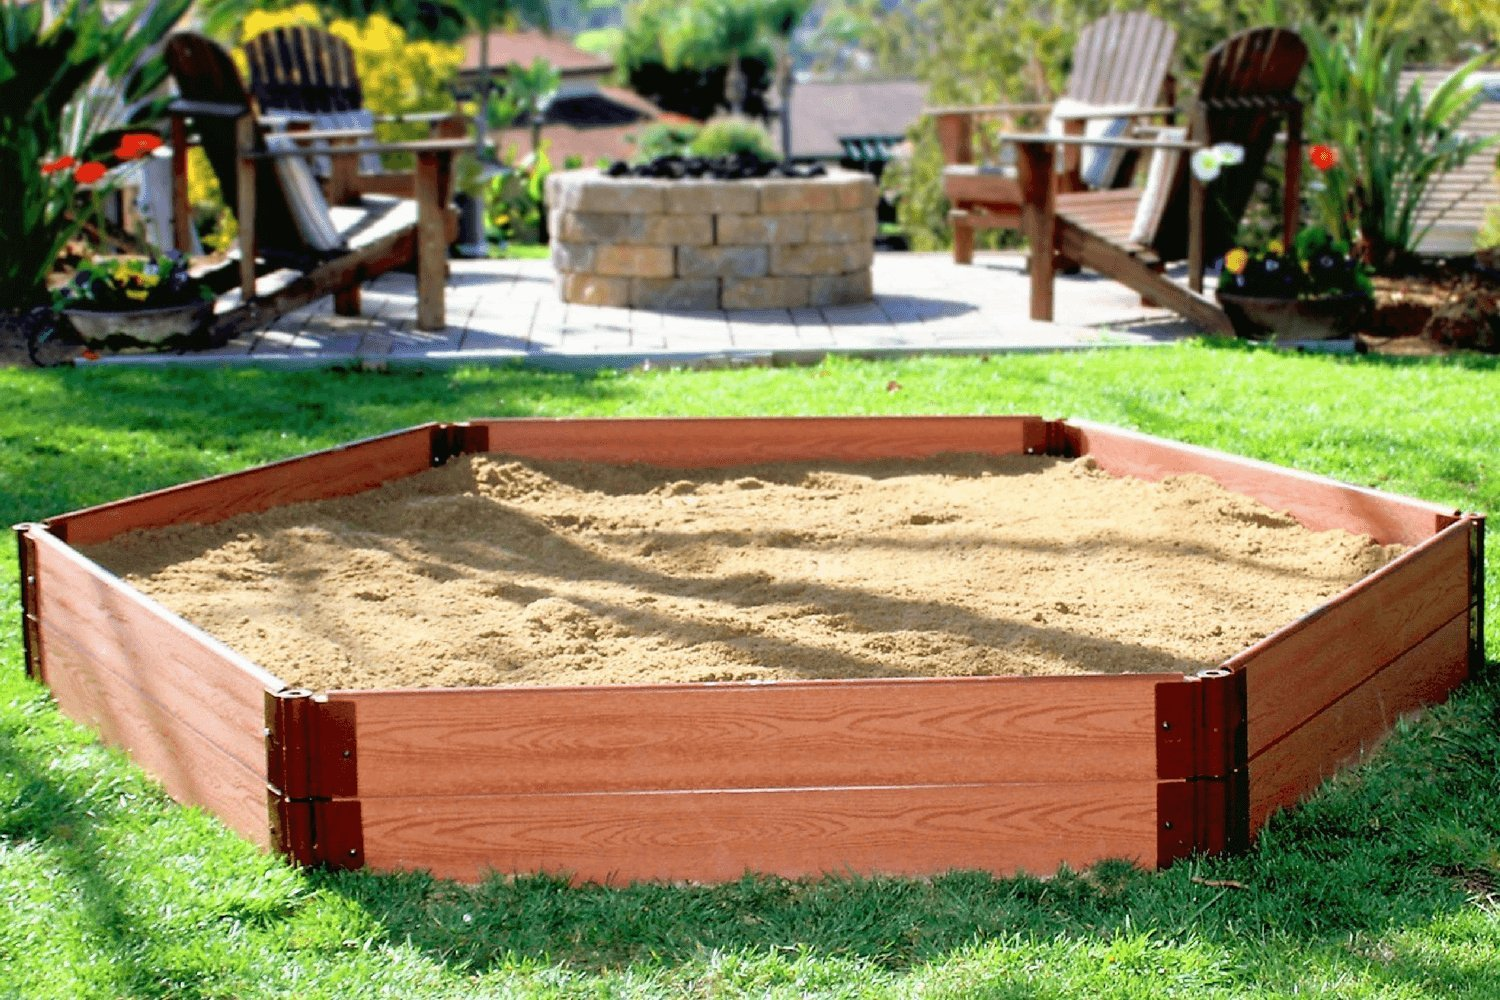 Frame It All 300001228 Sandbox Kit with Collapsible Cover by Frame It All (Image #4)